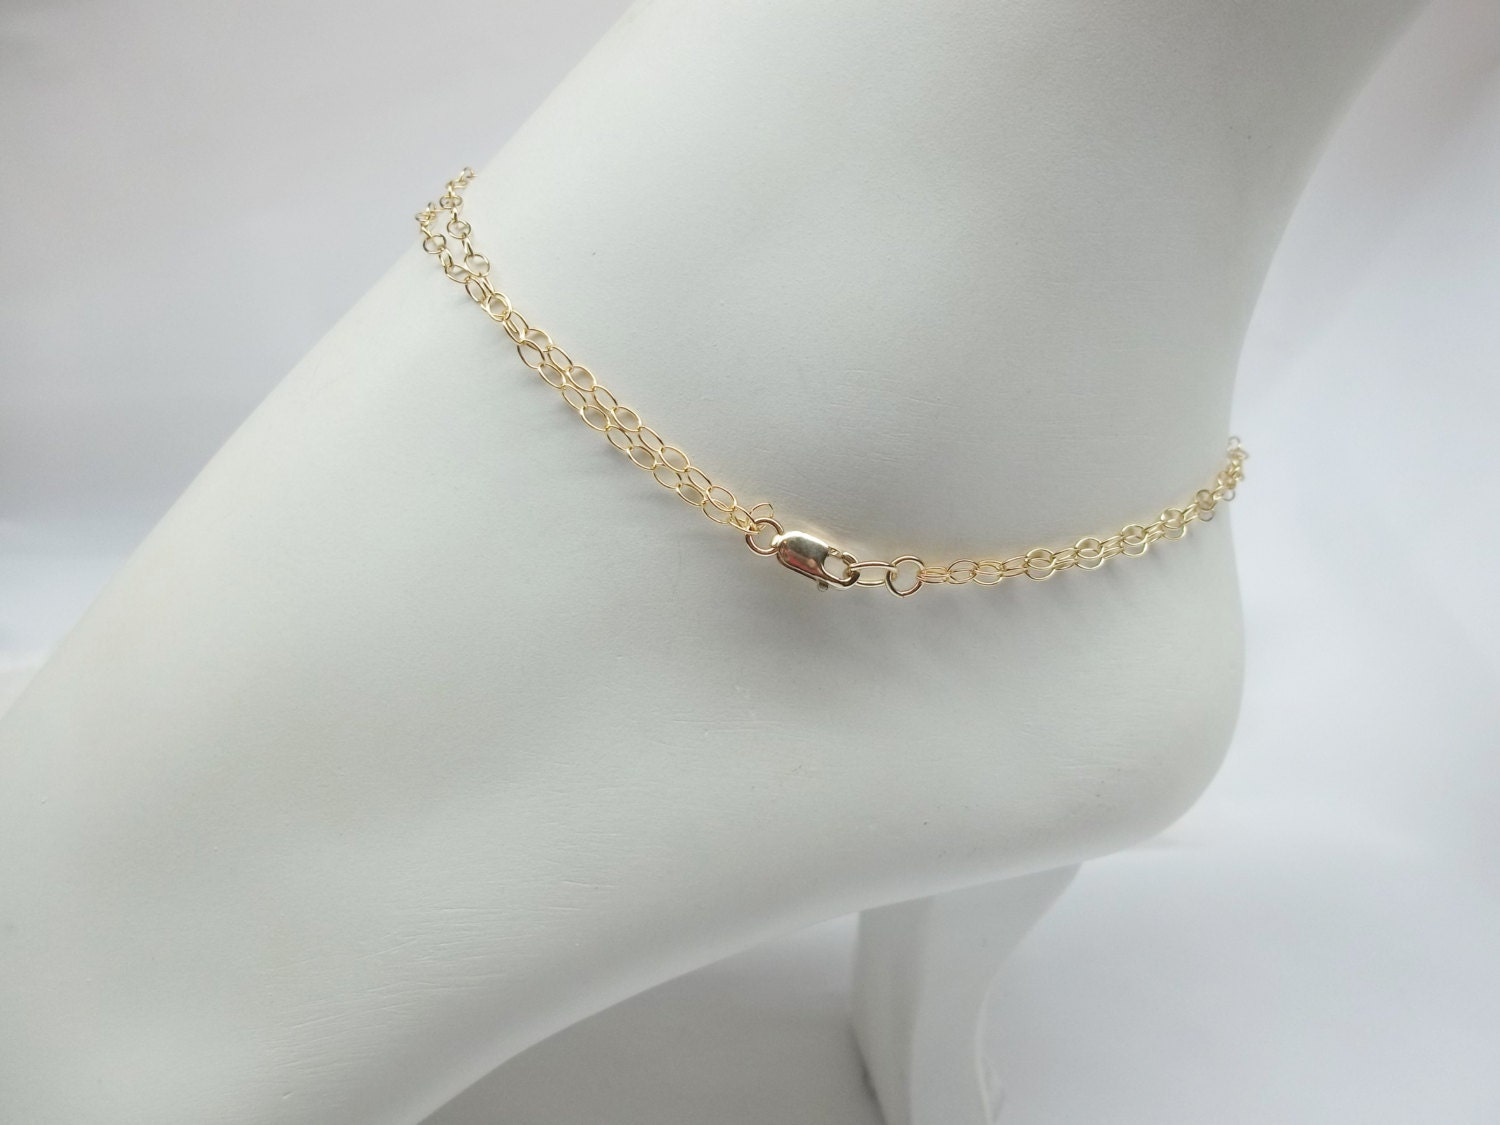 twisted ankle only diamond email enlarge click anklet two tone to friend heavenlytreasuresjewelry anklets bracelet gold cut a